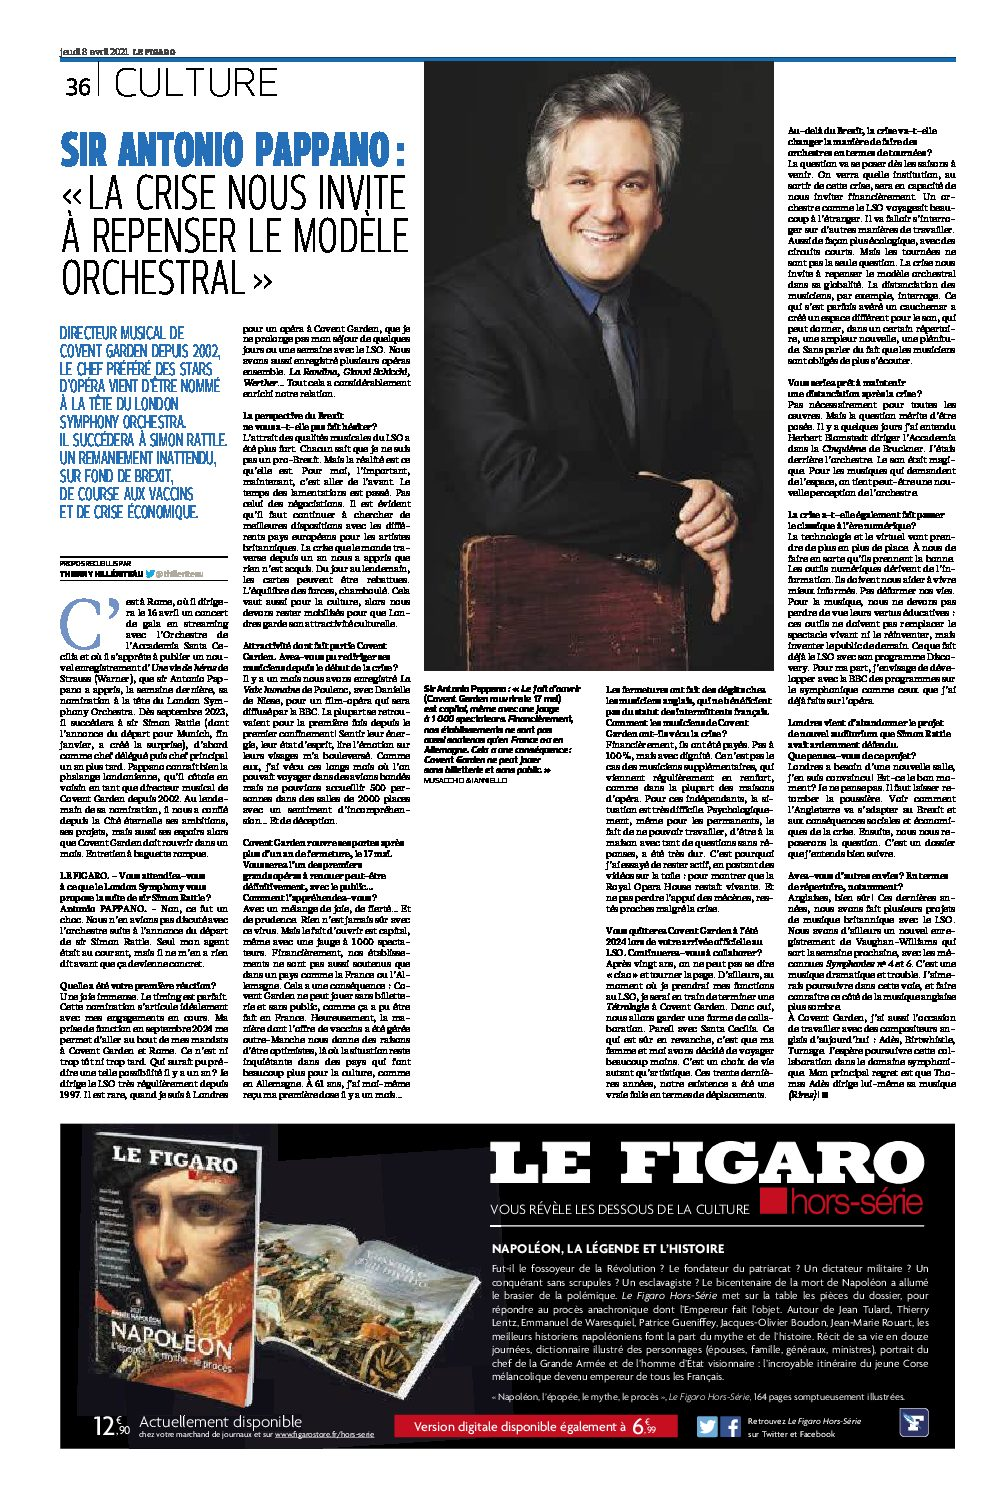 Pappano: It's time to rethink the orchestra model